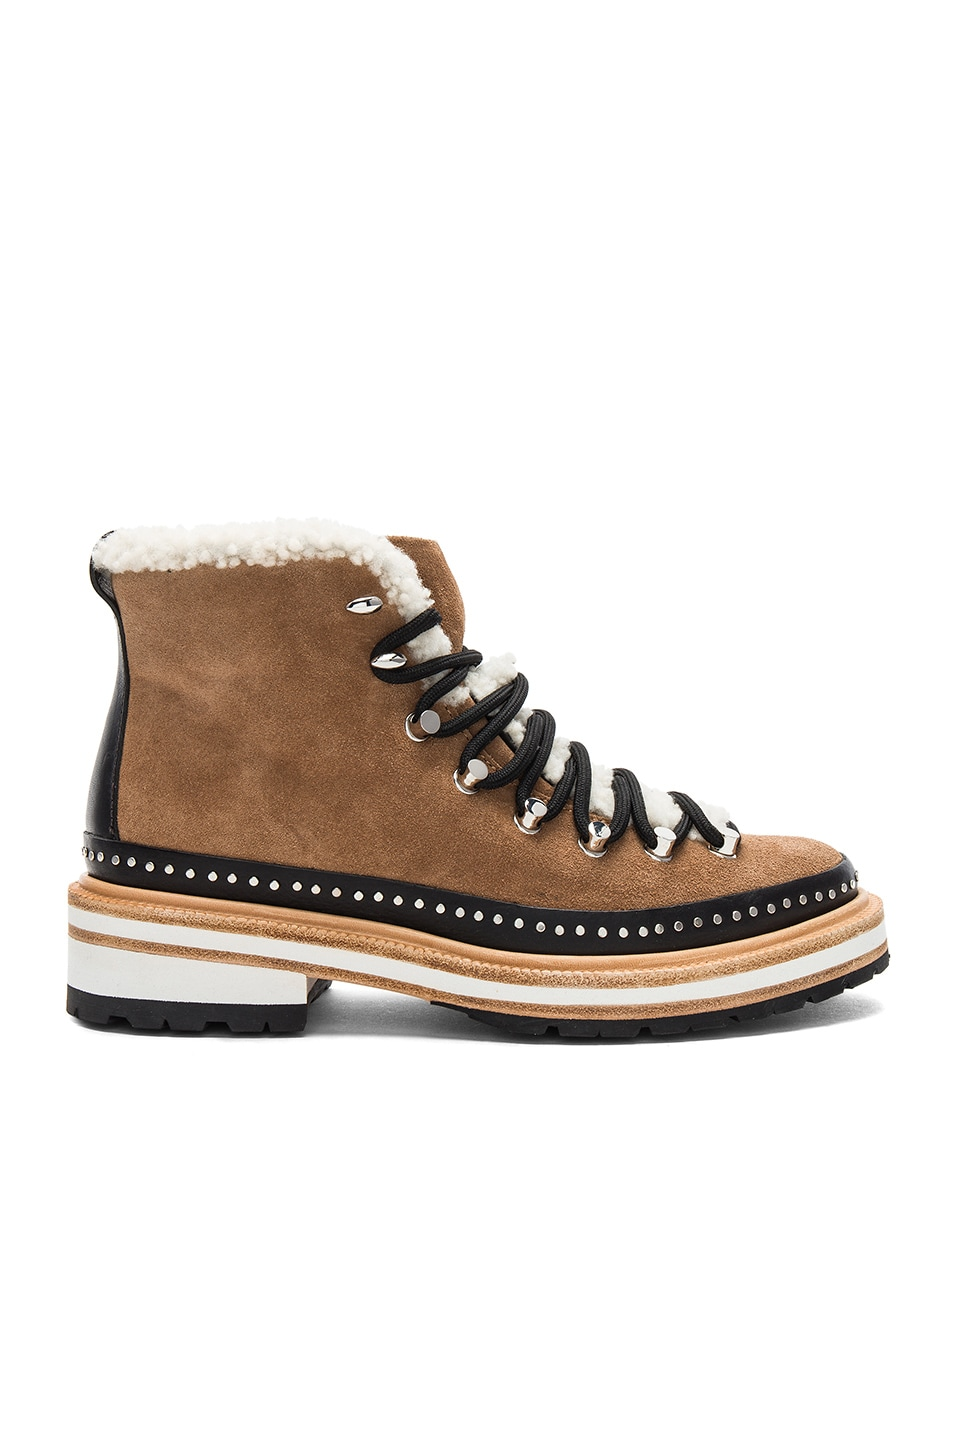 Compass Boot by Rag & Bone